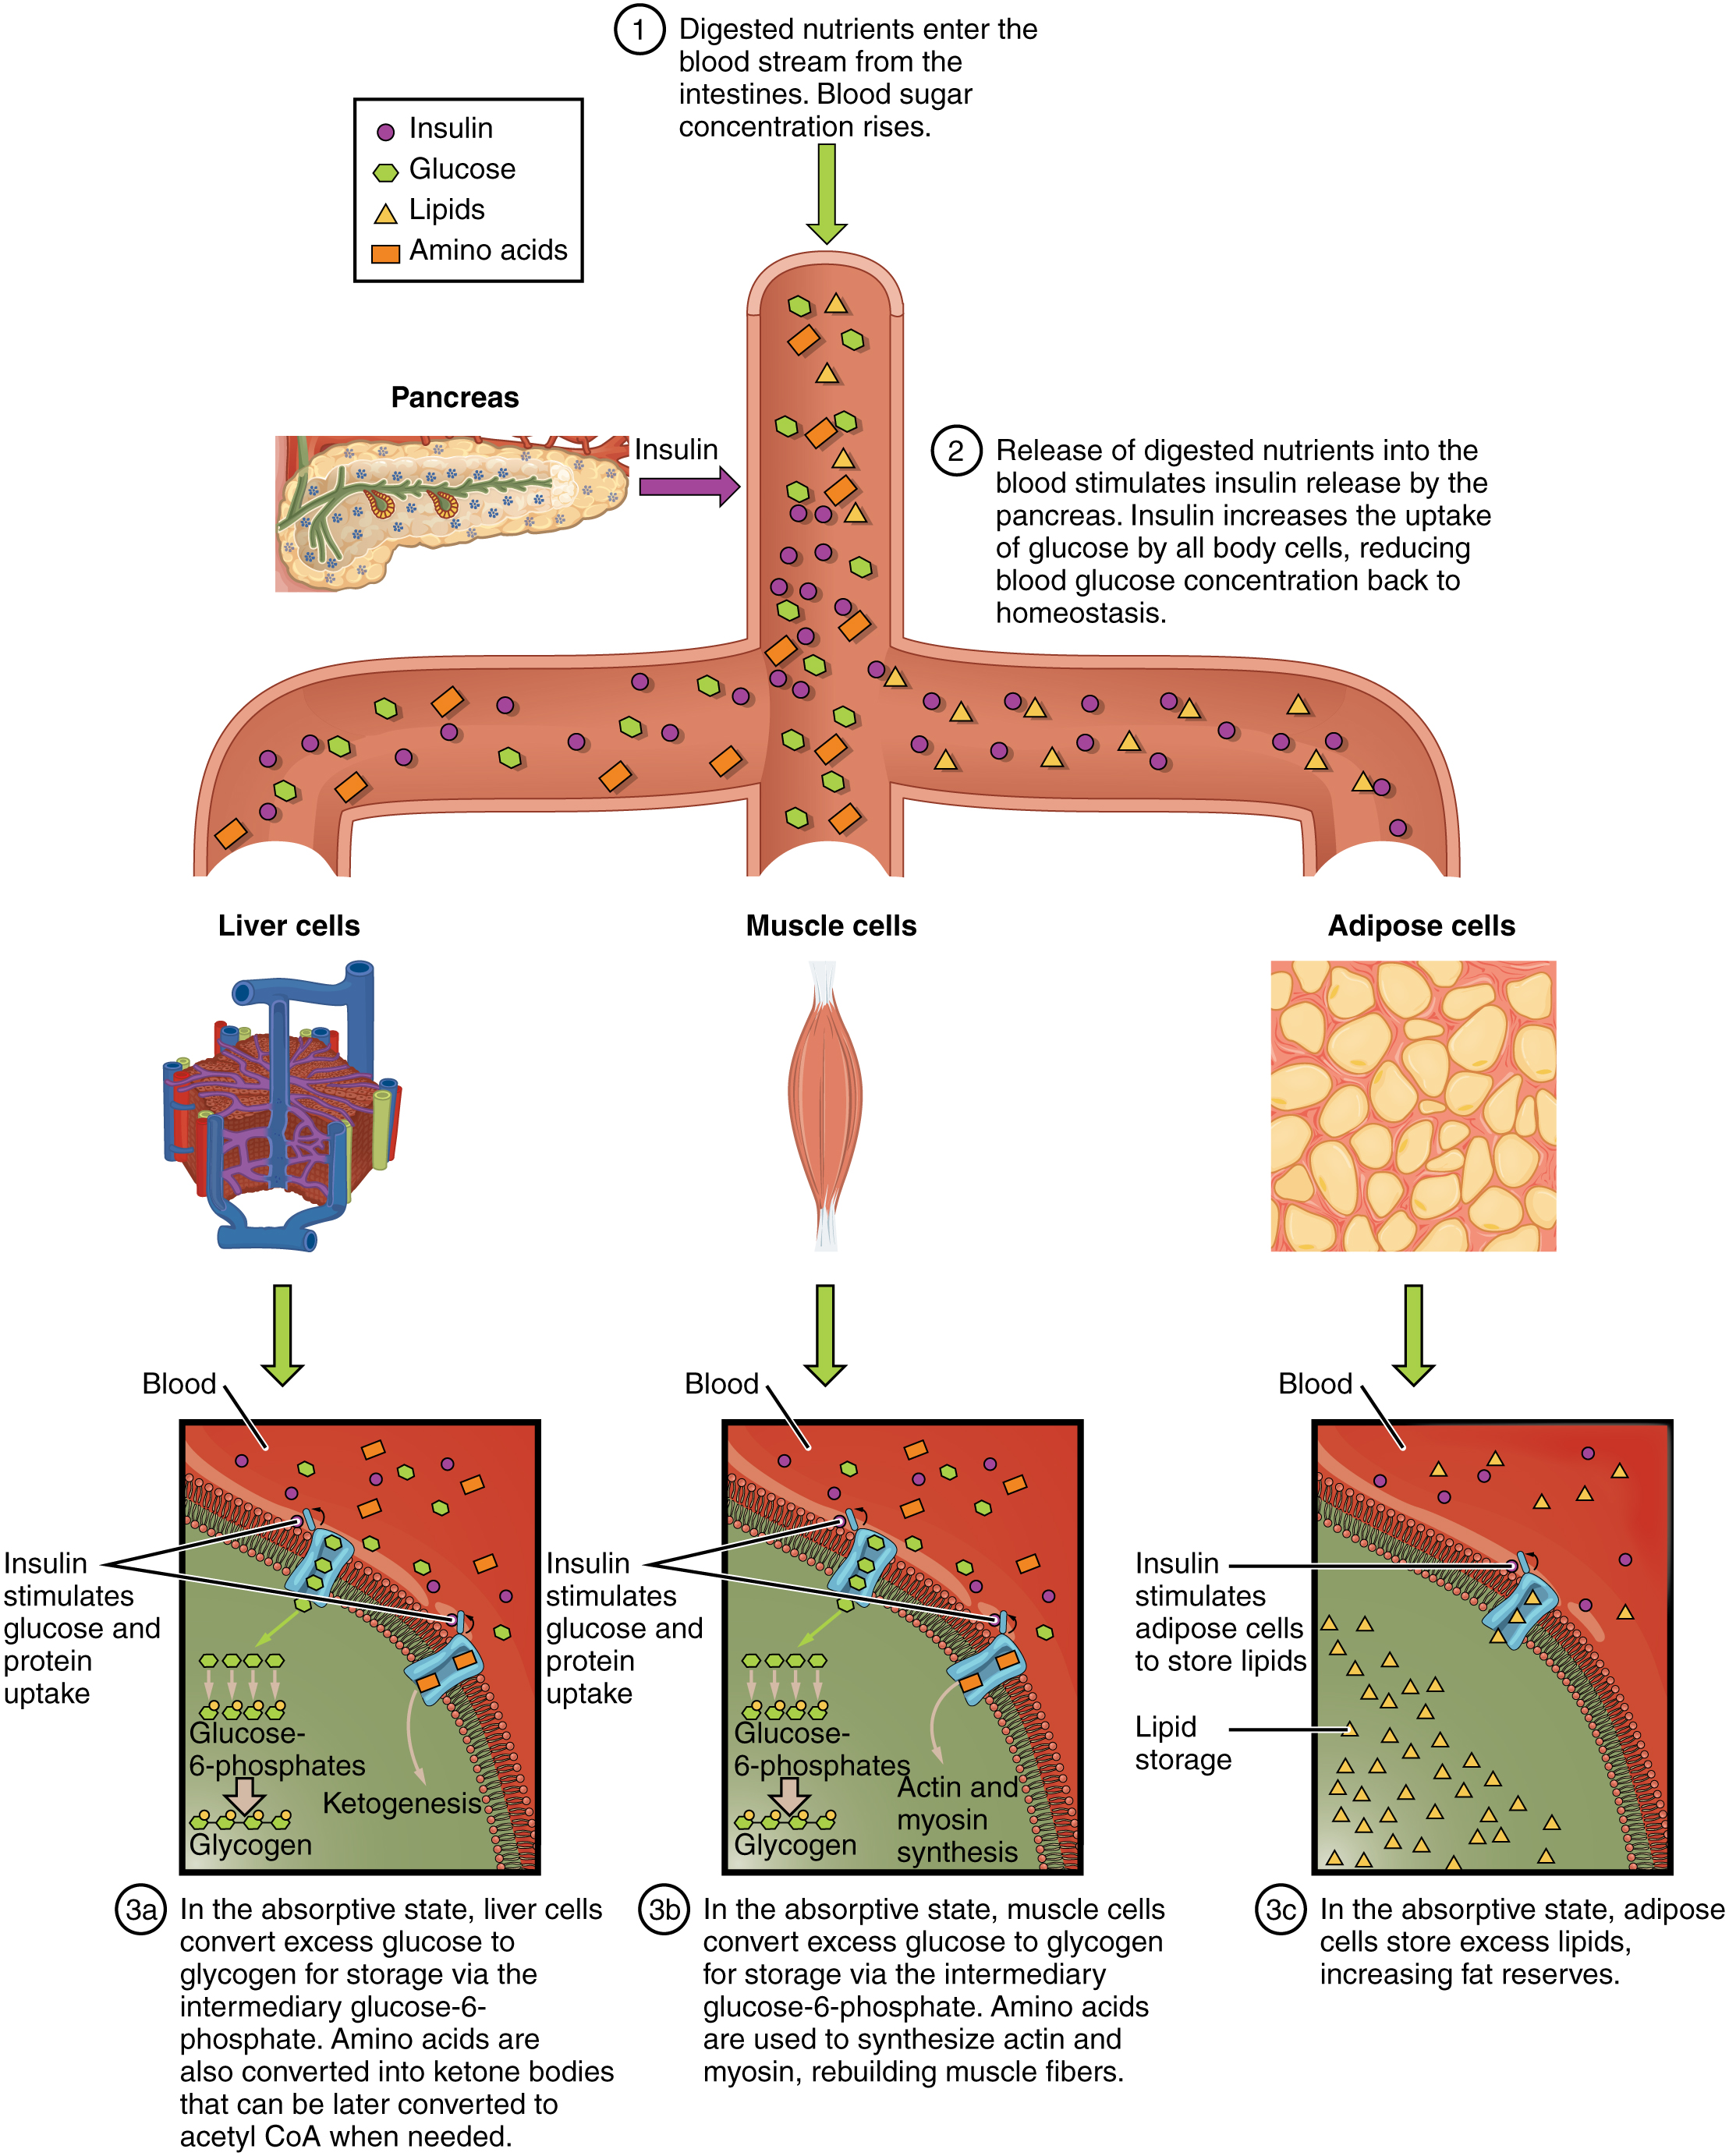 This figure shows how nutrients are absorbed by the body. The diagram shows digested nutrients entering the blood stream and being absorbed by liver cells, muscle cells, and adipose cells. Underneath each panel, text details the process taking place in each cell type.